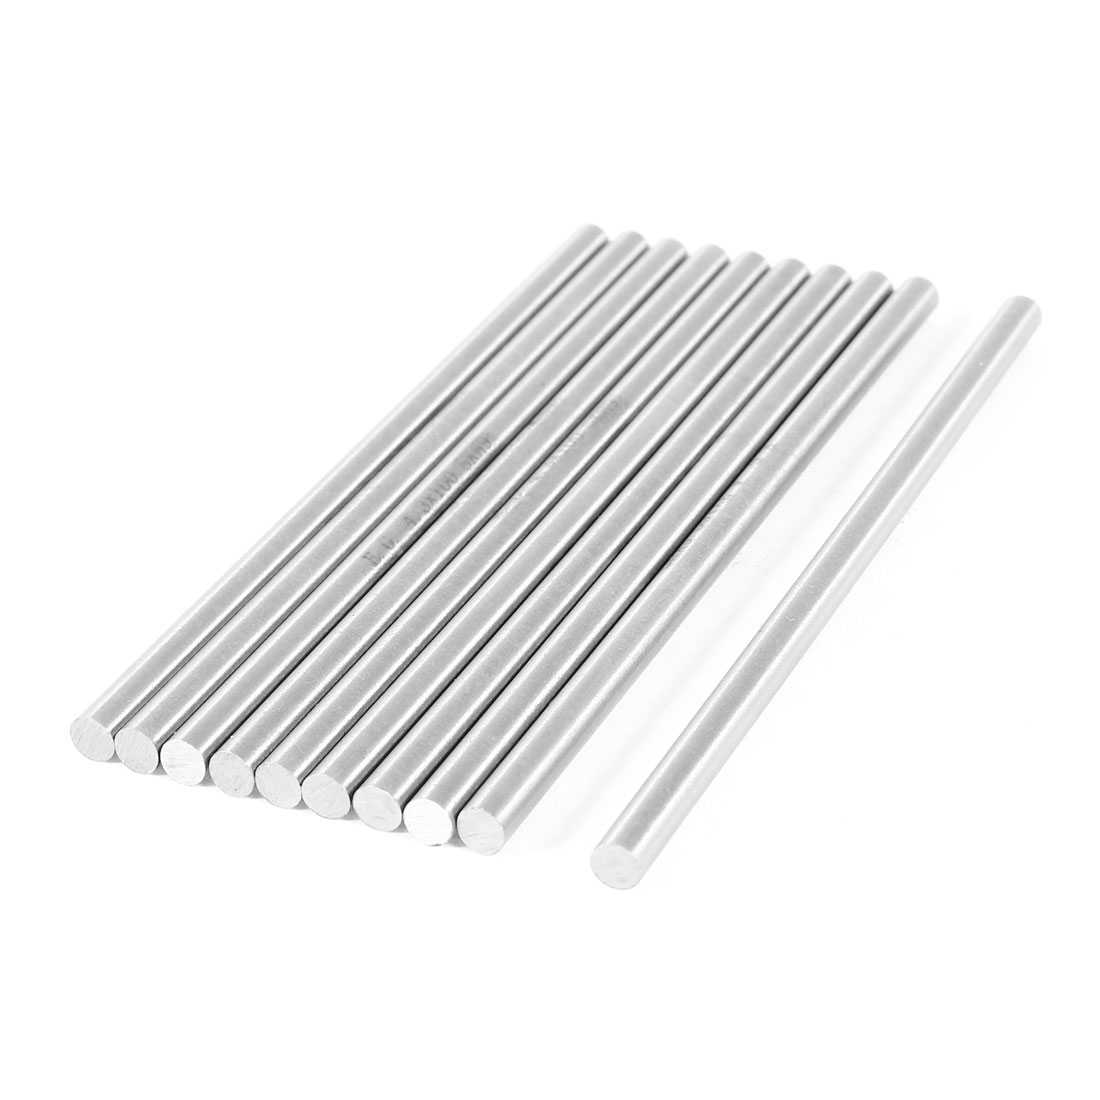 Unique Bargains CNC Lathe Part High Speed Steel Turning Bars 4.3mm x 100mm 10 Pcs